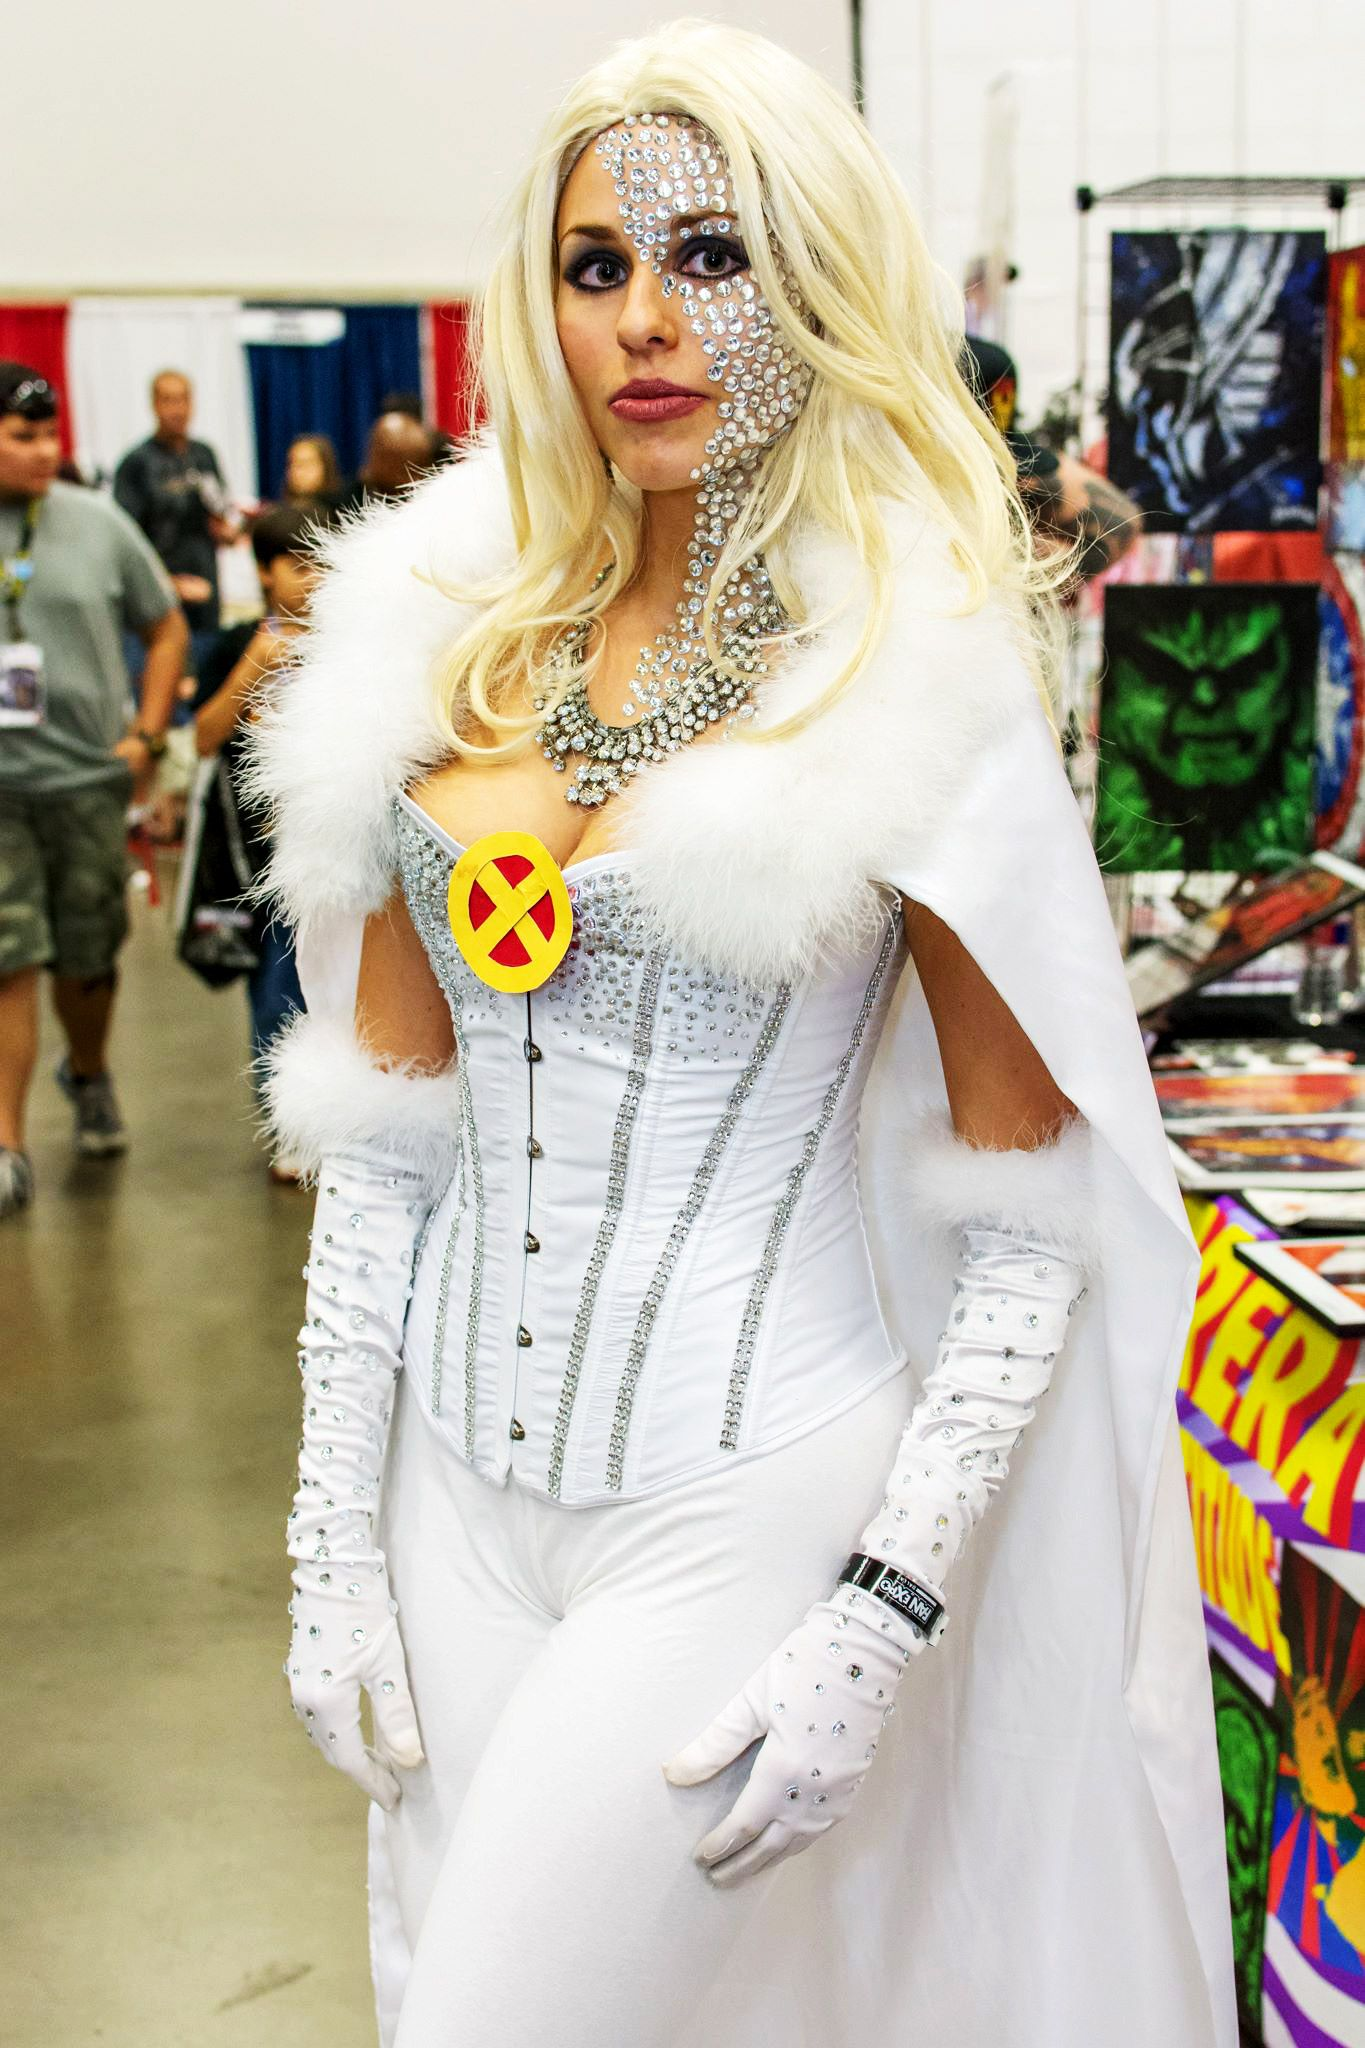 Emma Frost Cosplay 2014 Dallas Comic Con A Little Much On The Face Bling But The Rest Is Nice Emma Frost Cosplay Cosplay Outfits Emma Frost Costume